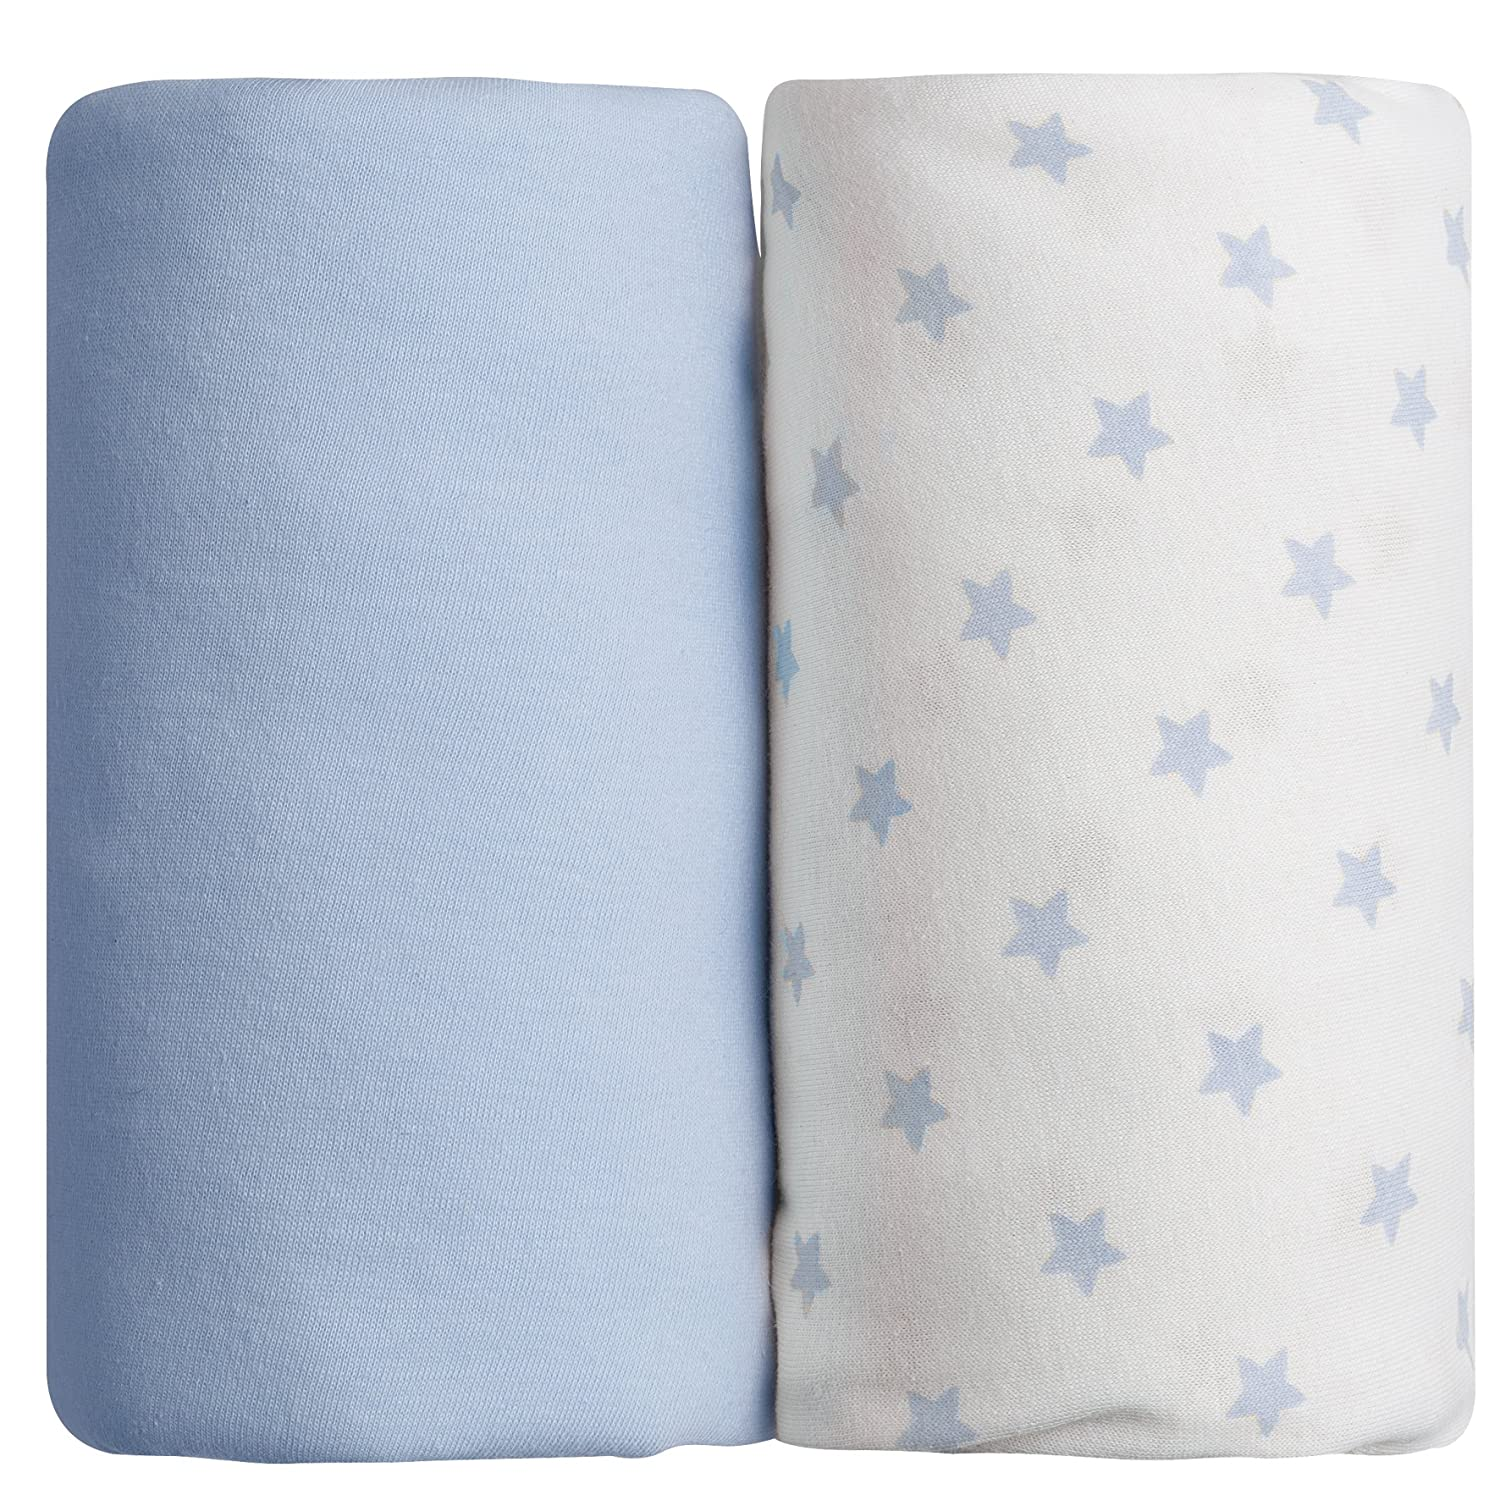 Babycalin Fitted Sheets (Set of 2 Blue 60 x 120 cm BBC413807